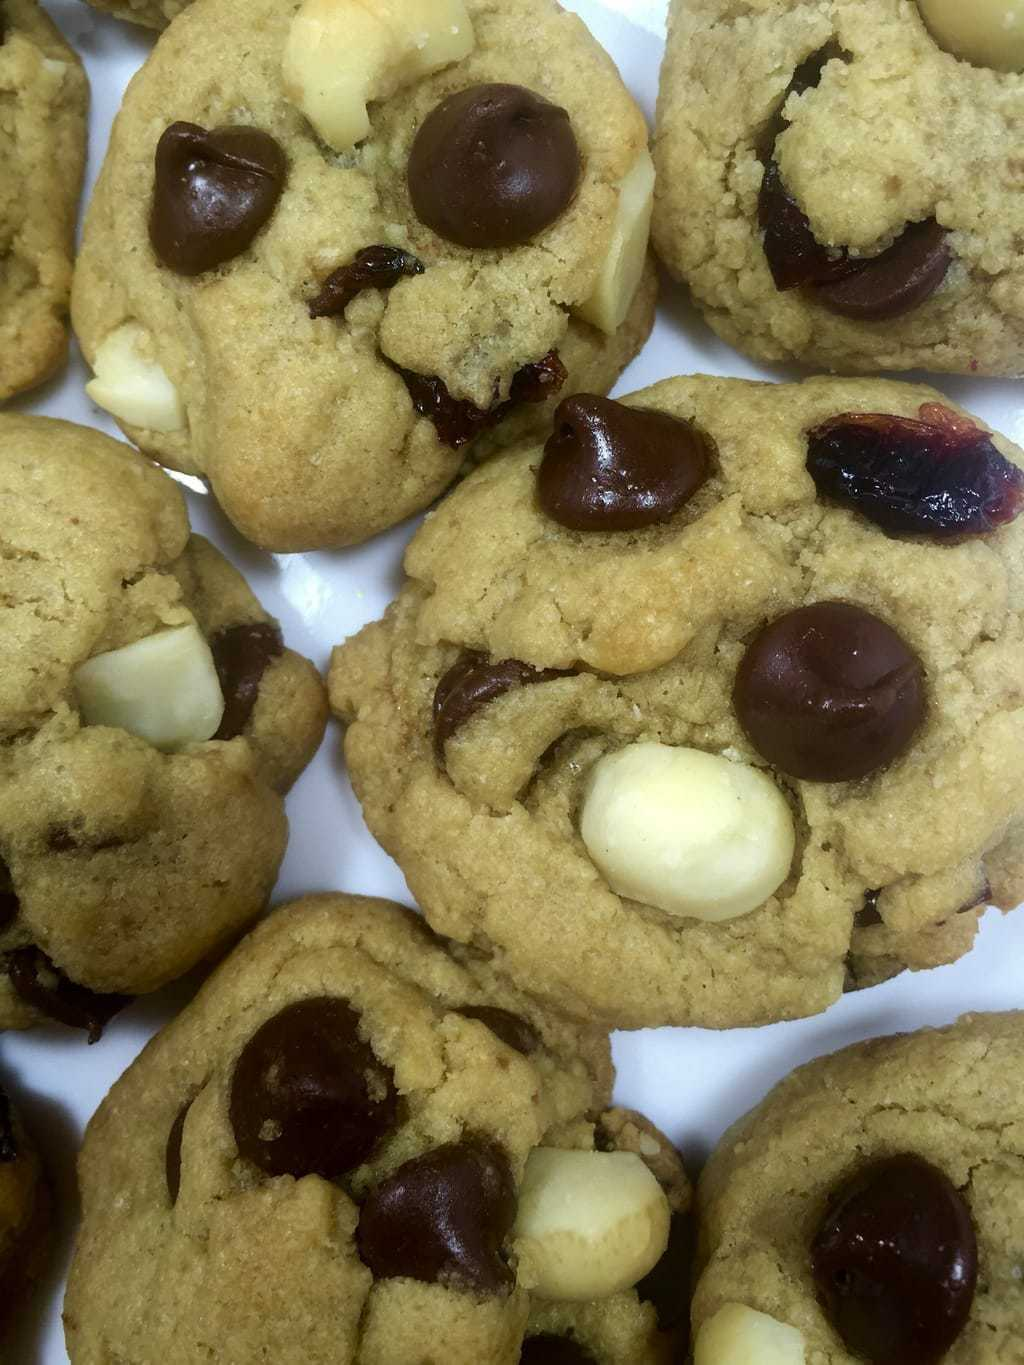 Chocolate Chip Macadamia Cookies with Cranberries